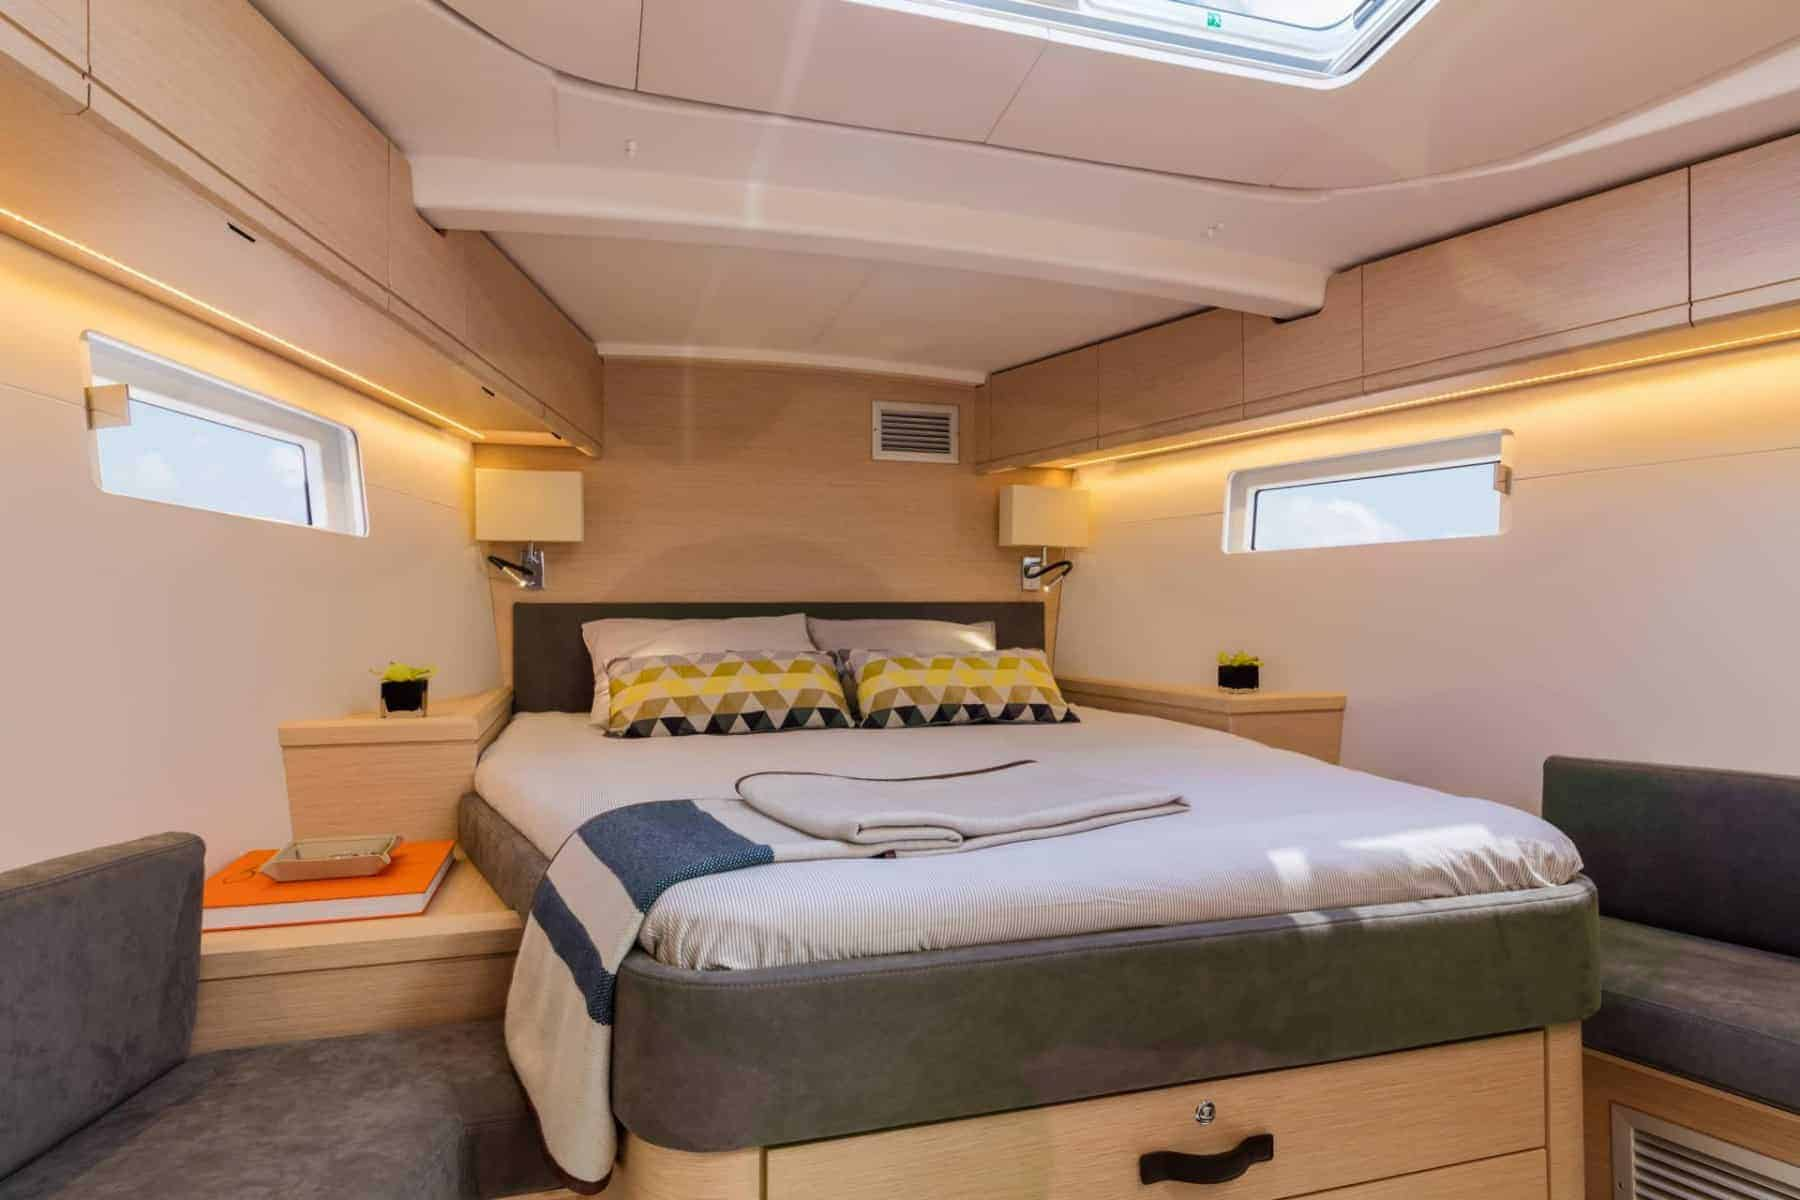 Jeanneau-51-interior-cabin-5-charter-ownership-yacht